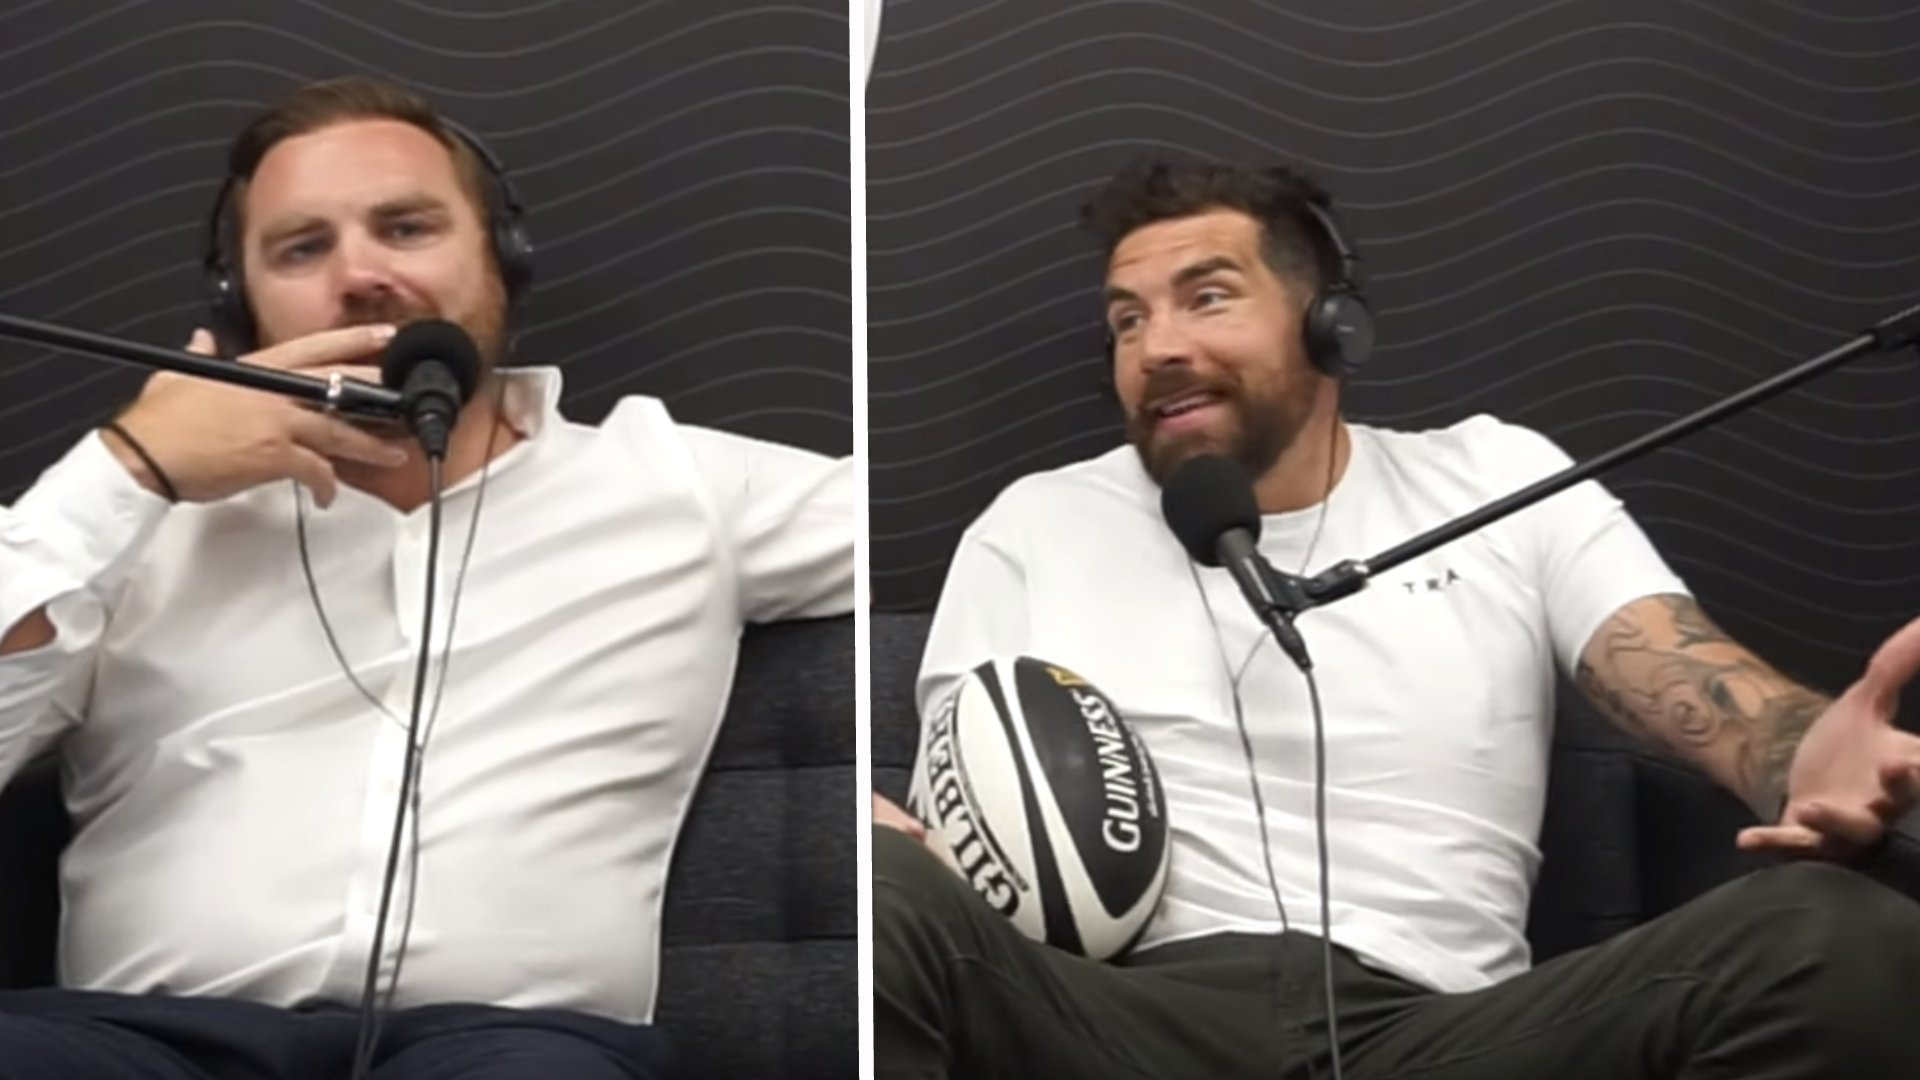 WATCH: The Rugby Pod predict France to win the World Cup